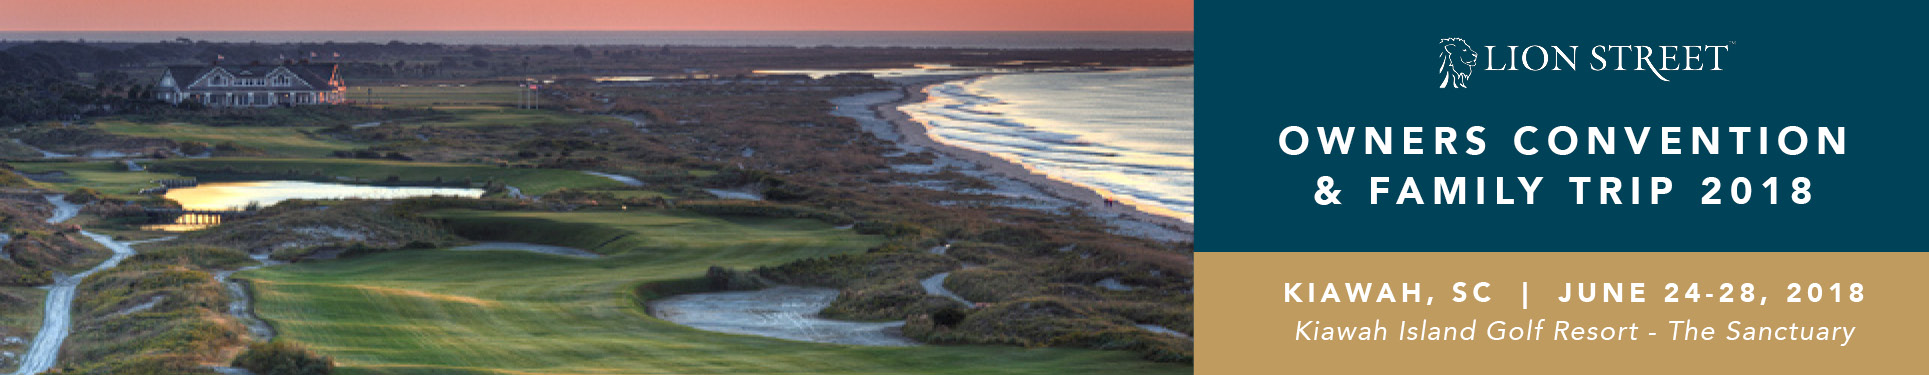 Kiawah Owners Convention